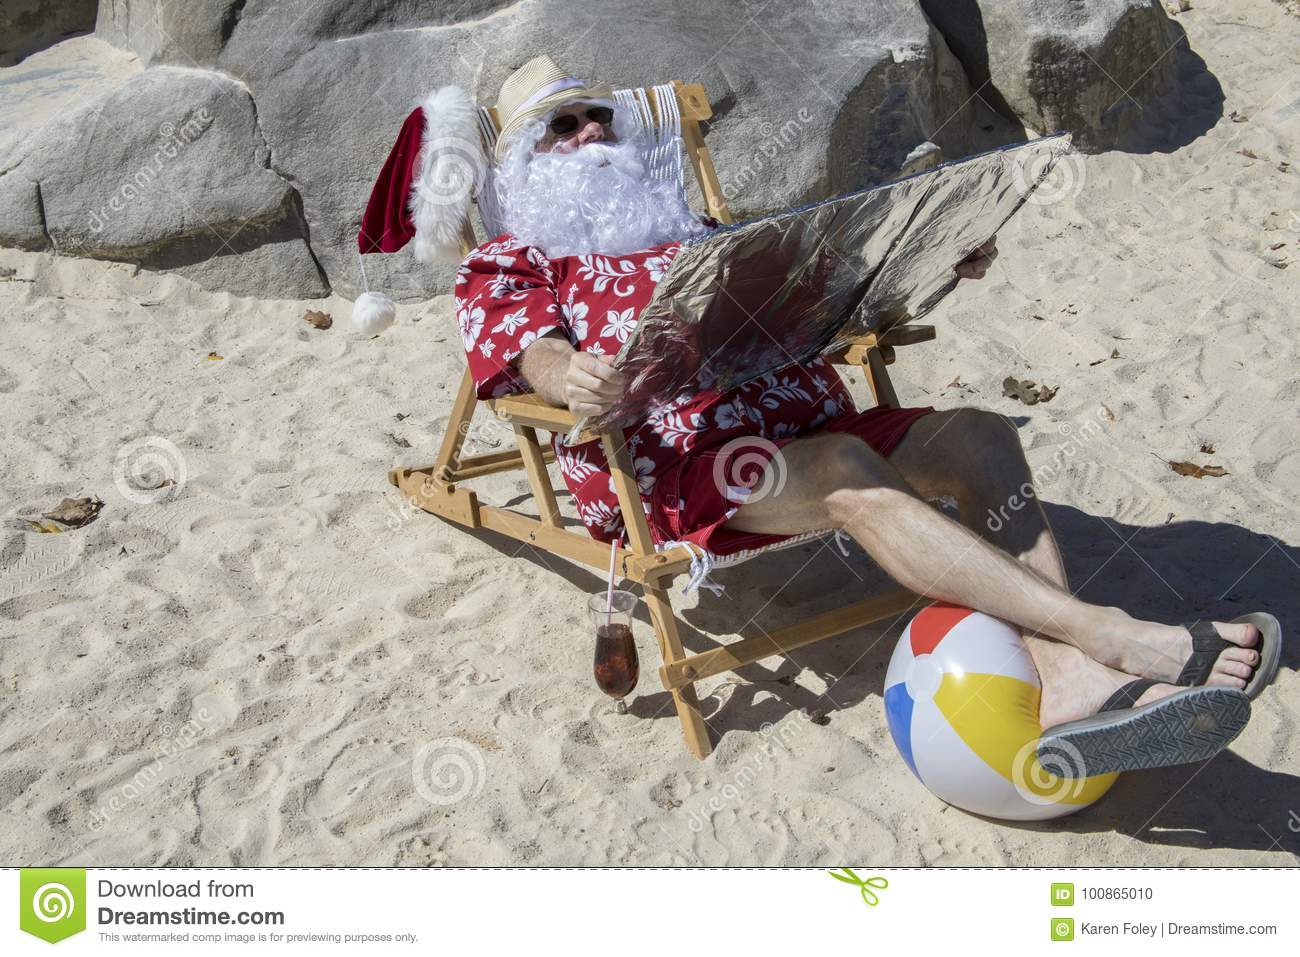 cac29553 Santa Claus in red swimming trunks ans Hawaiian shirt lounging on sandy  beach with straw hat and sunglasses using reflector to tan.